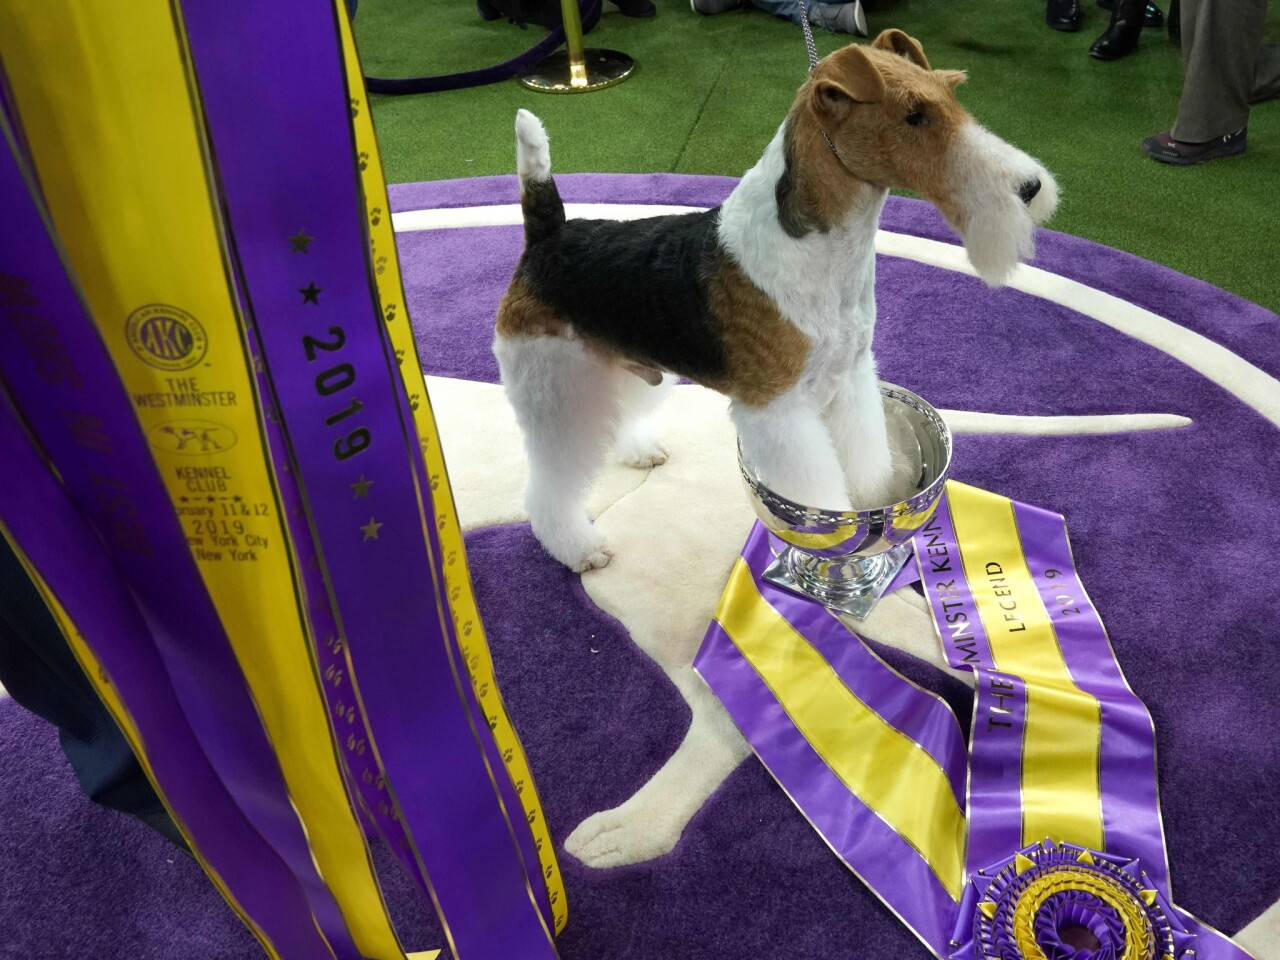 King, a wire hair fox terrier, poses after winning Best in Show at the Westminster Kennel Club Dog Show at Madison Square Garden in New York on Feb. 12.